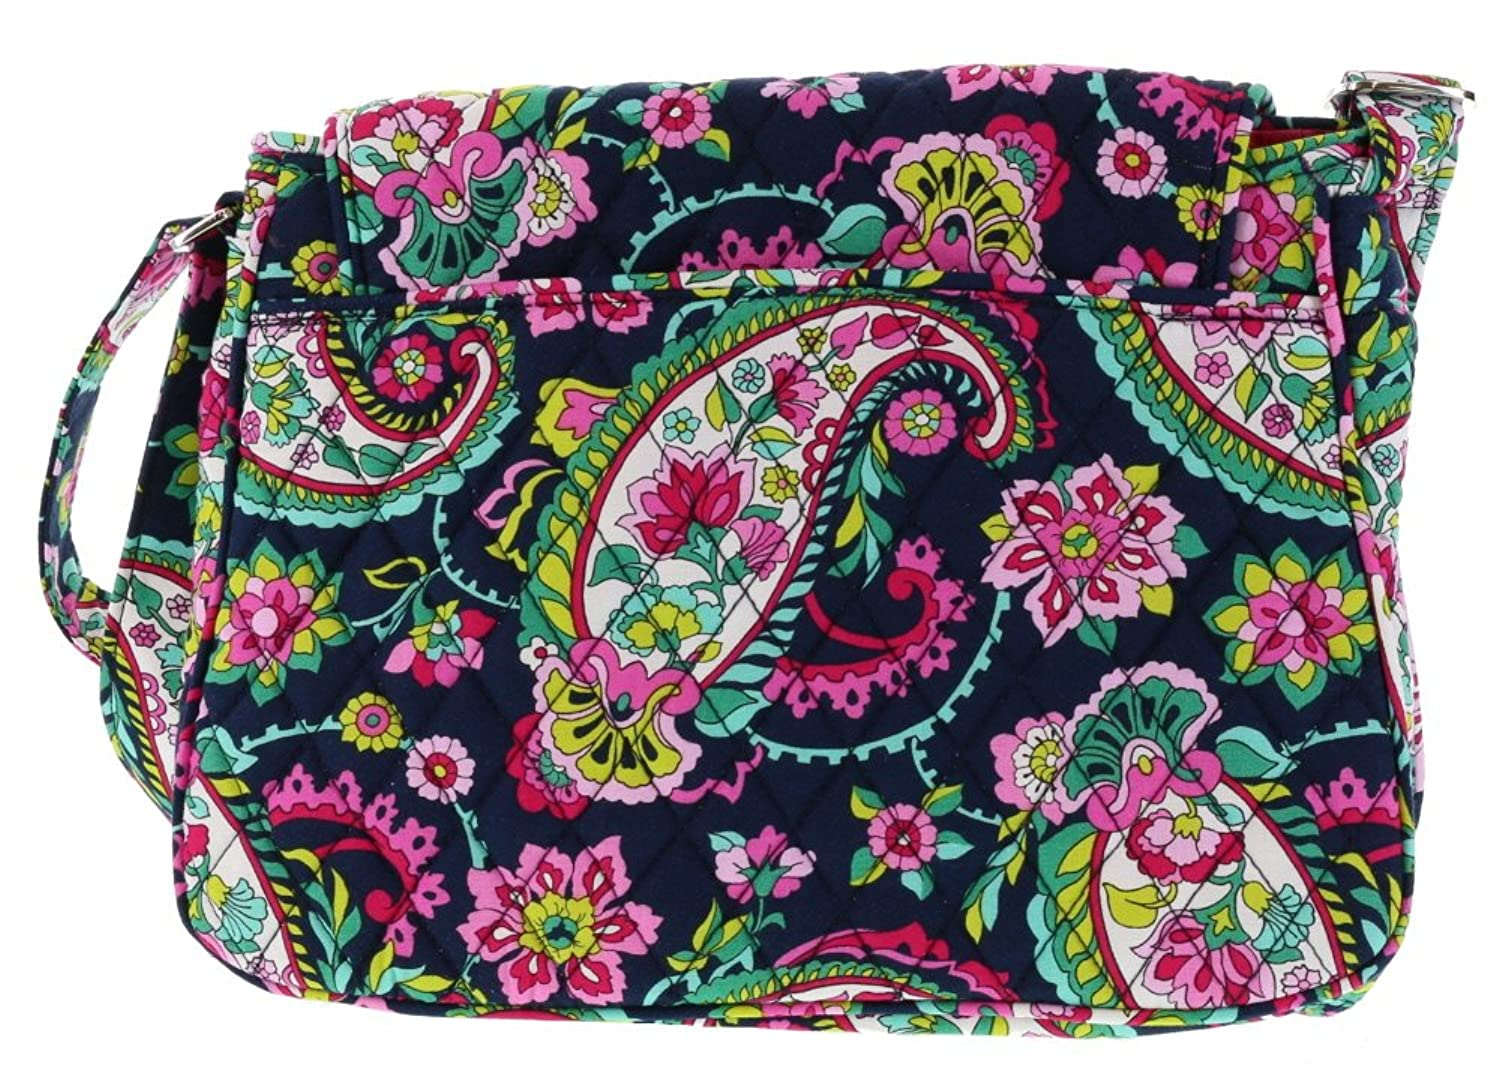 Vera Bradley Medium Flap Crossbody Messenger Bag Shoulder Bag in Petal Paisley